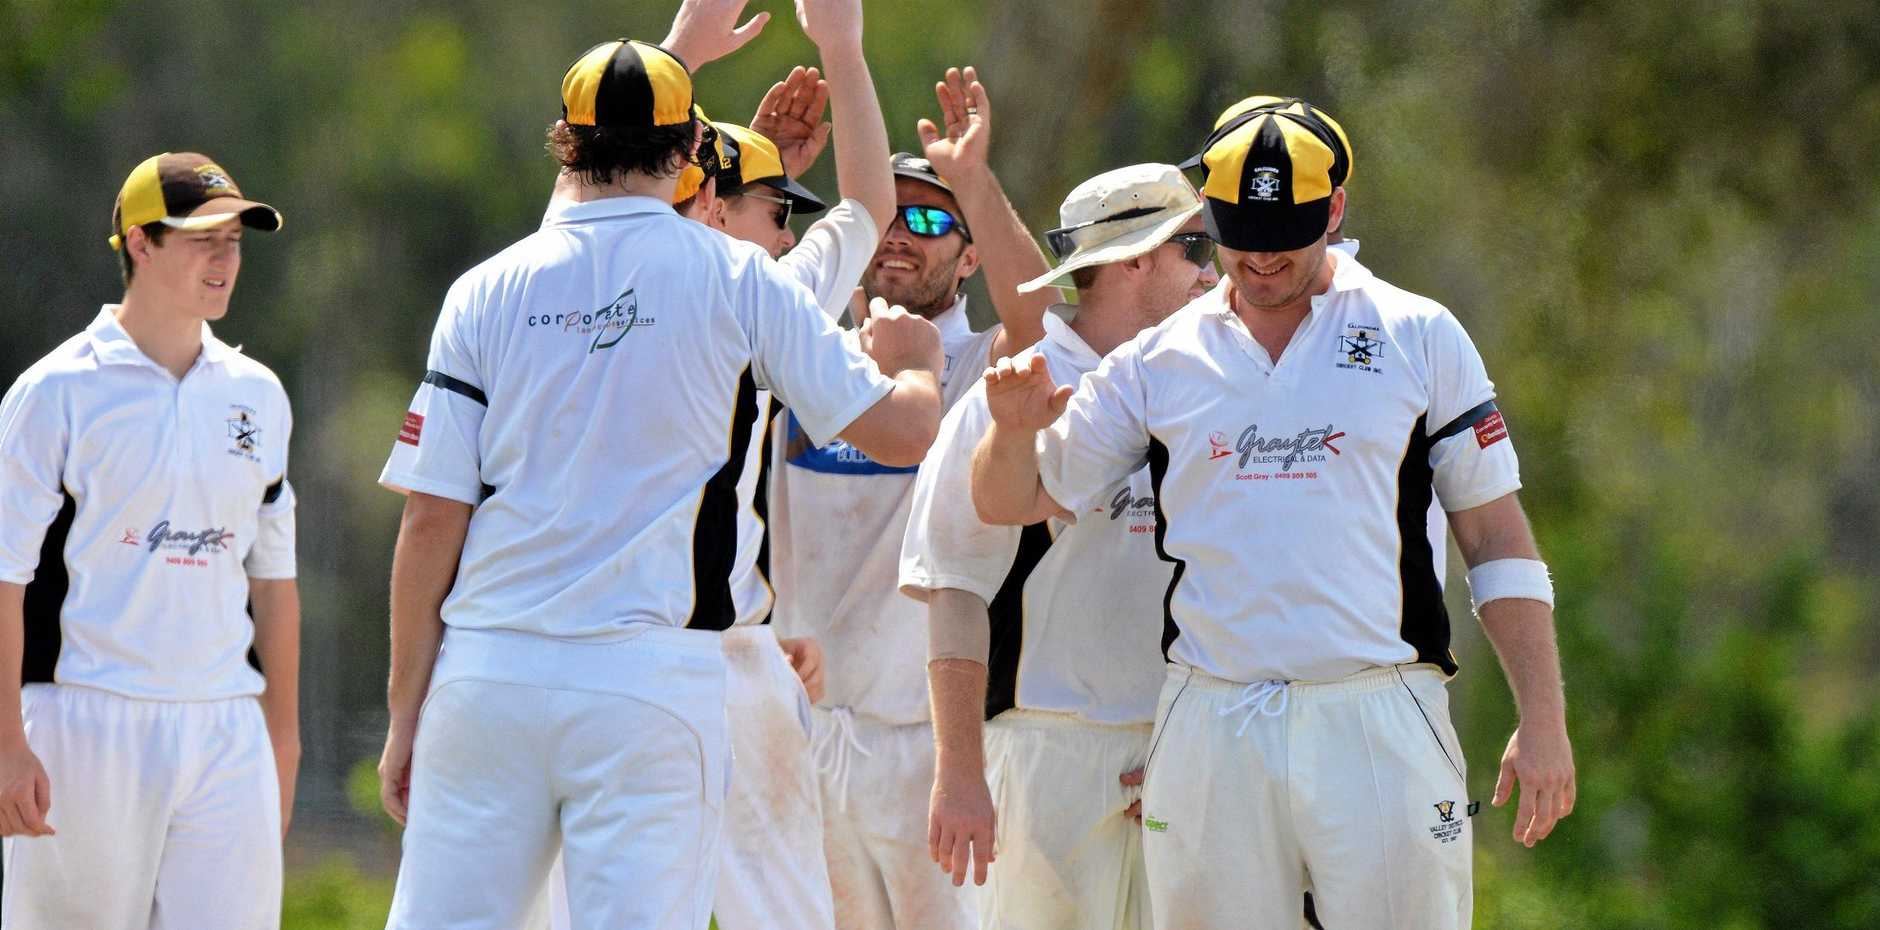 CELEBRATION: High fives from Caloundra players in a previous game.